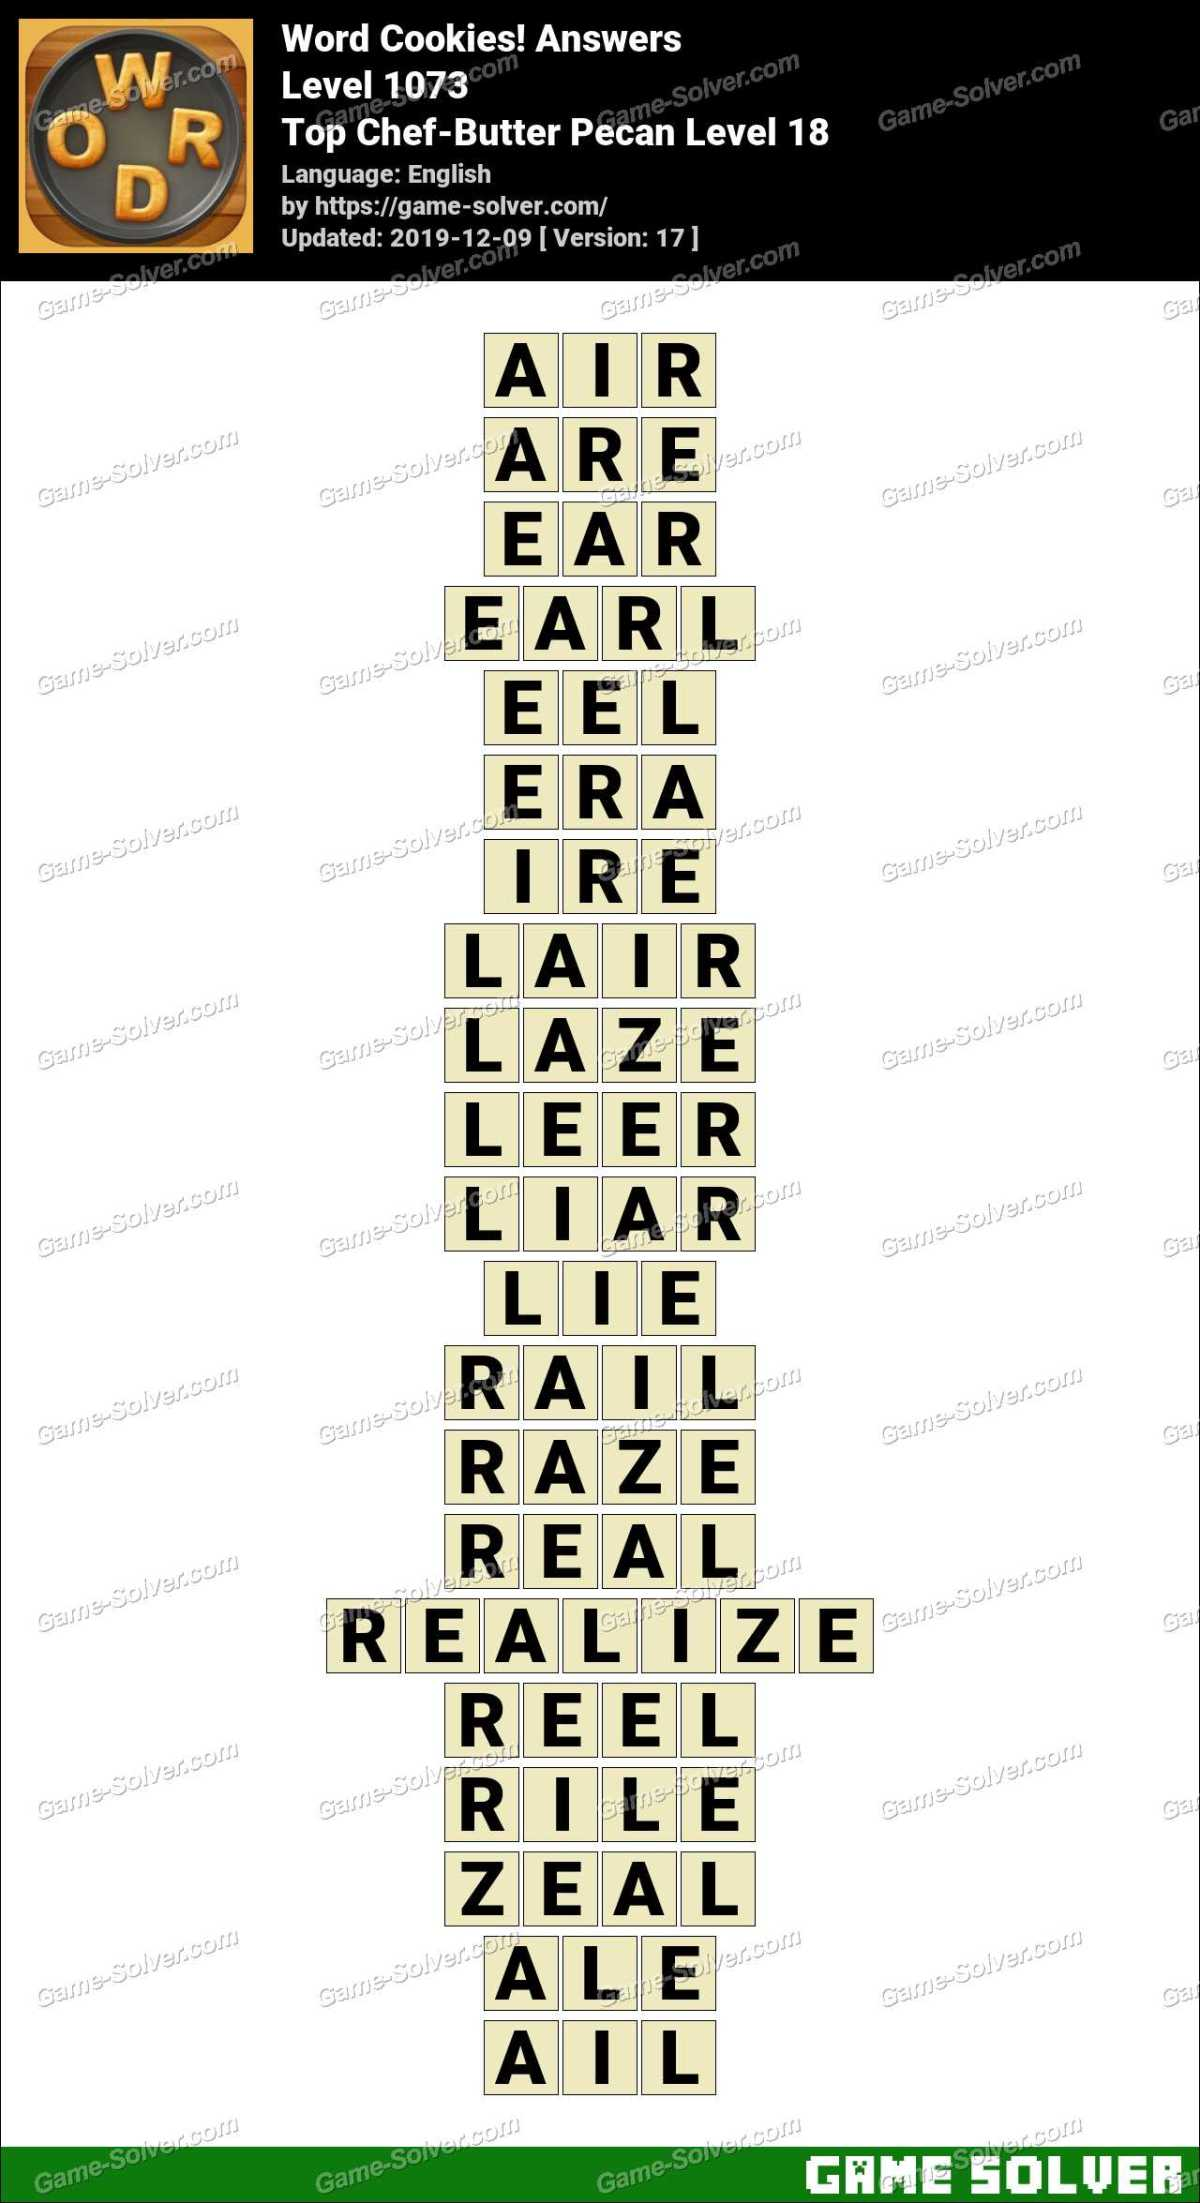 Word Cookies Top Chef-Butter Pecan Level 18 Answers